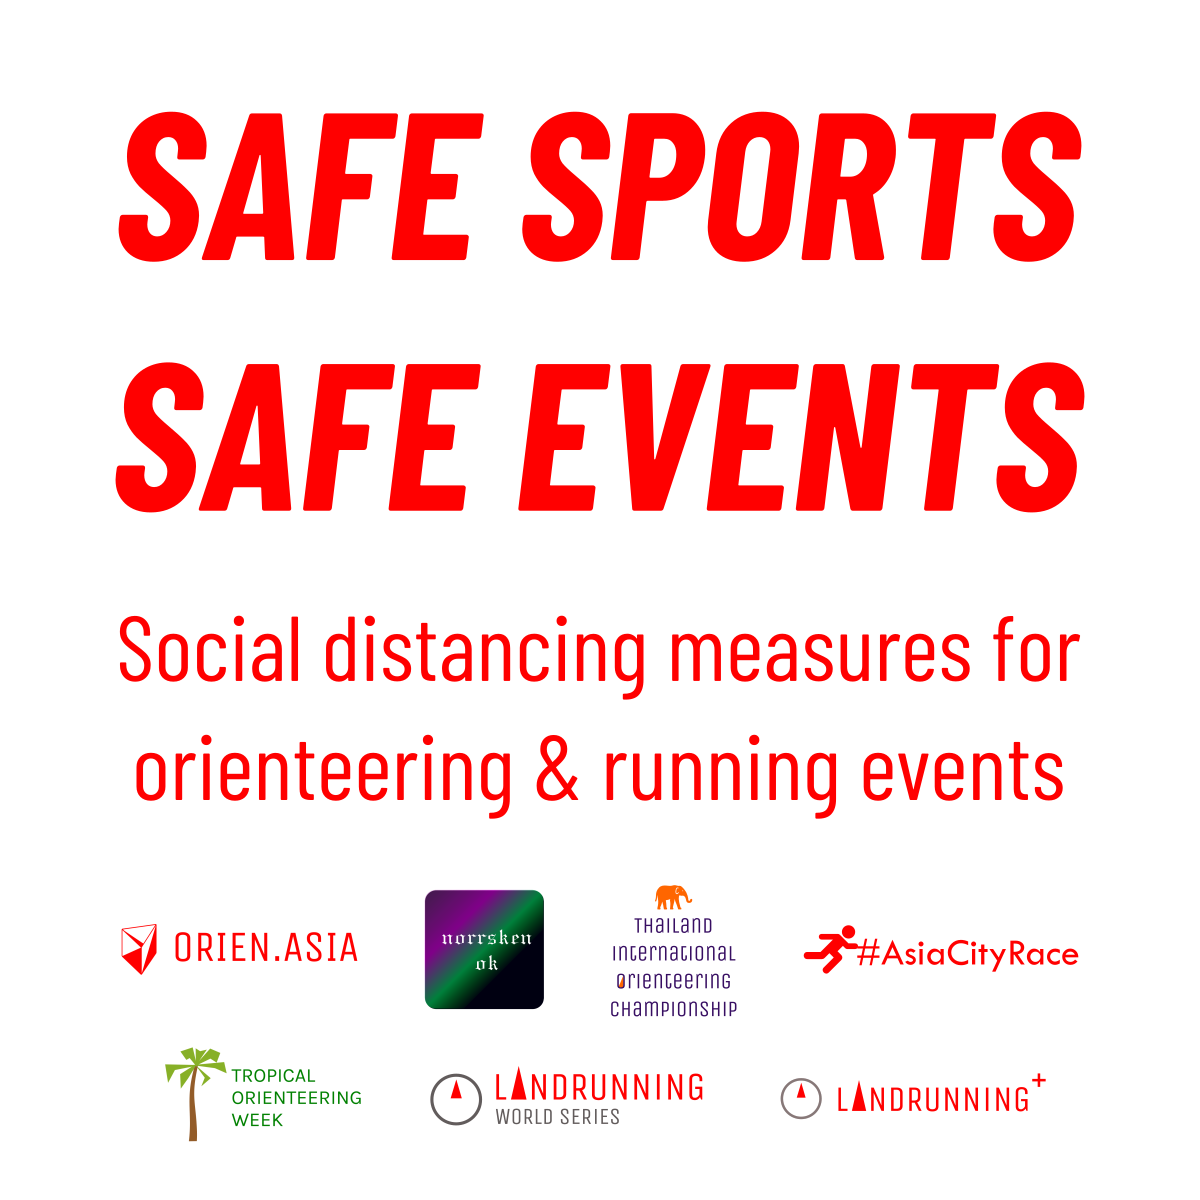 Safe sports, safe events: social distancing measures for orienteering and running events